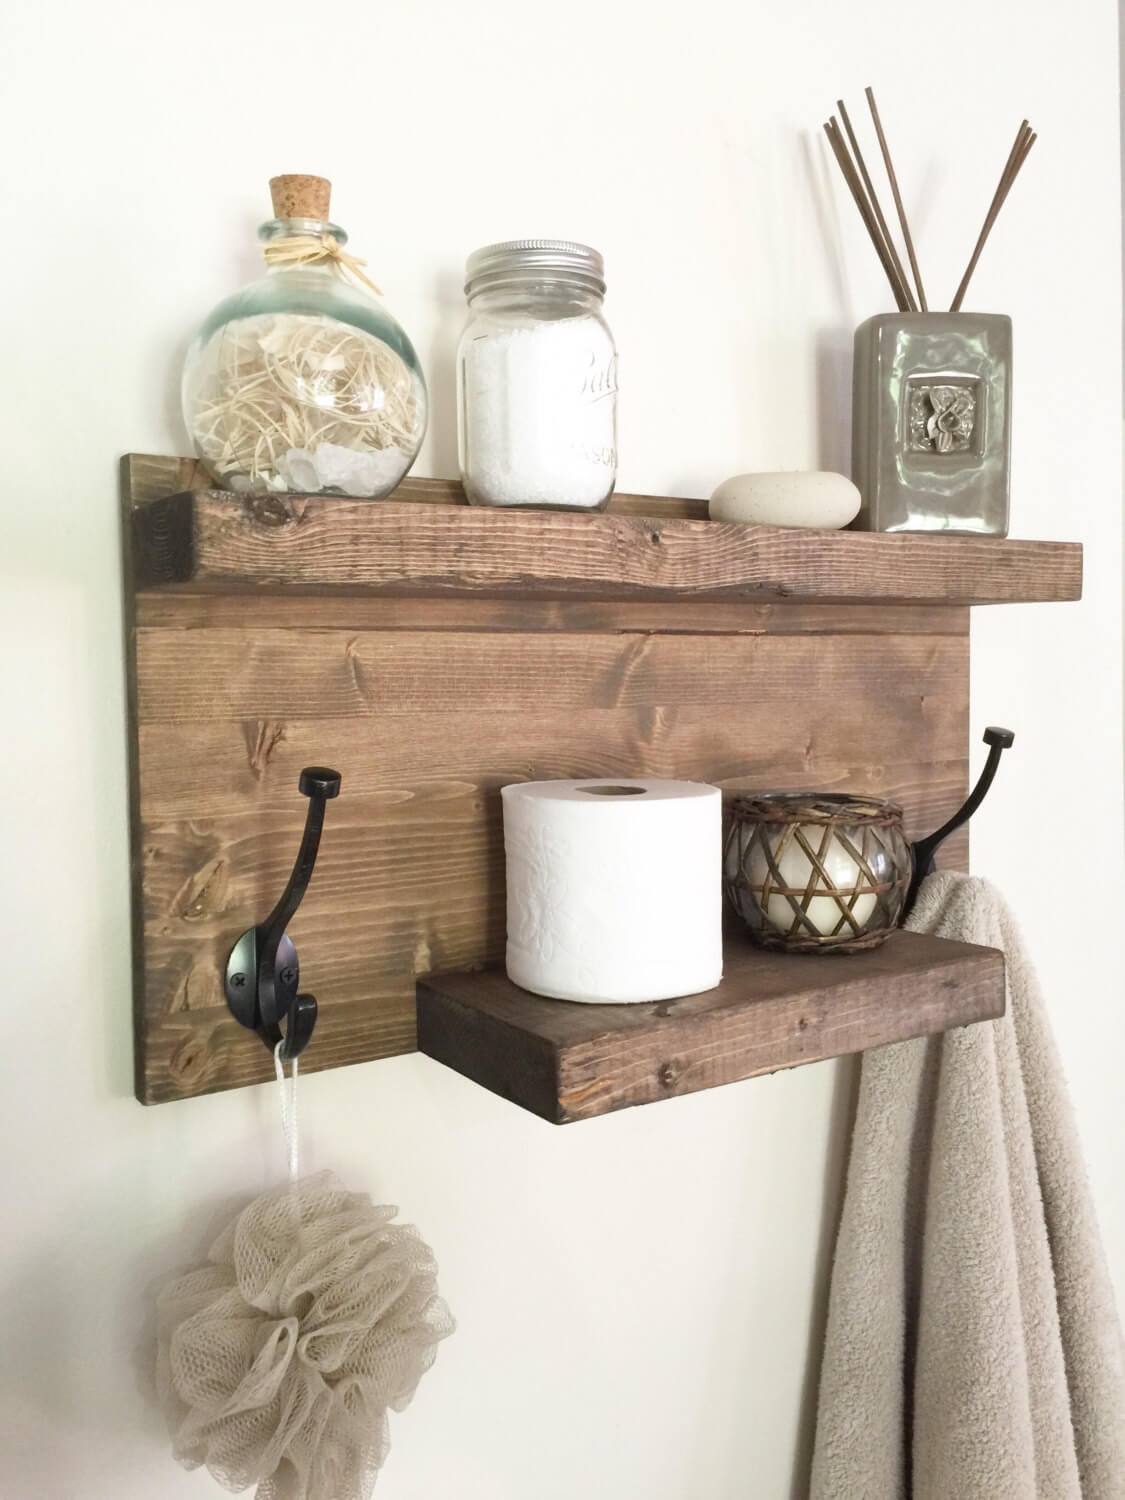 Diy Wood Towel Rack And Organizer